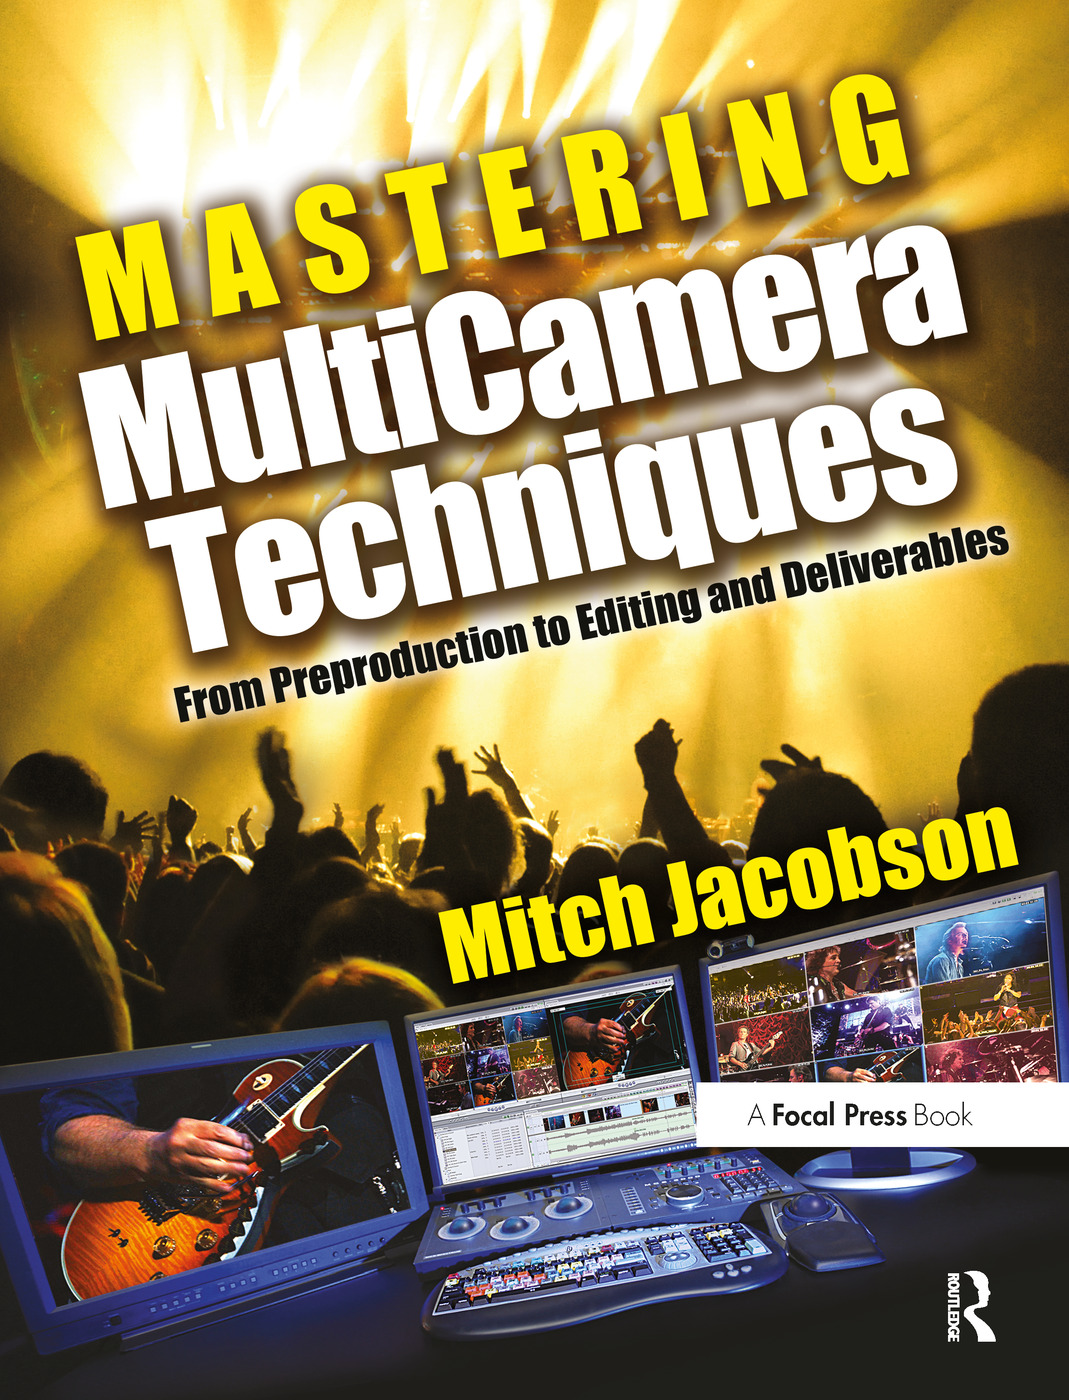 Mastering MultiCamera Techniques: From Preproduction to Editing and Deliverables book cover